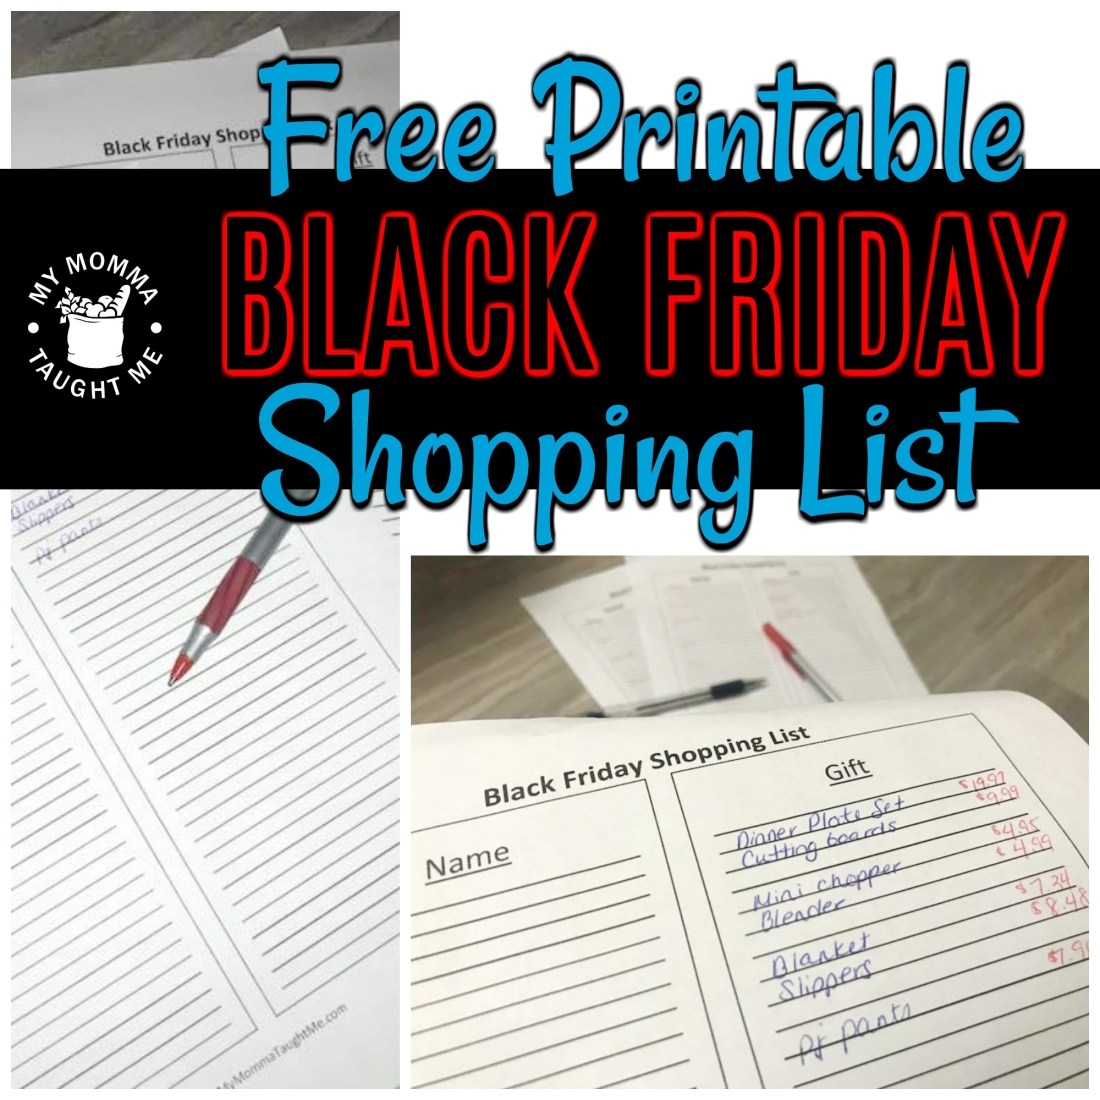 Free Printable Black Friday Shopping List